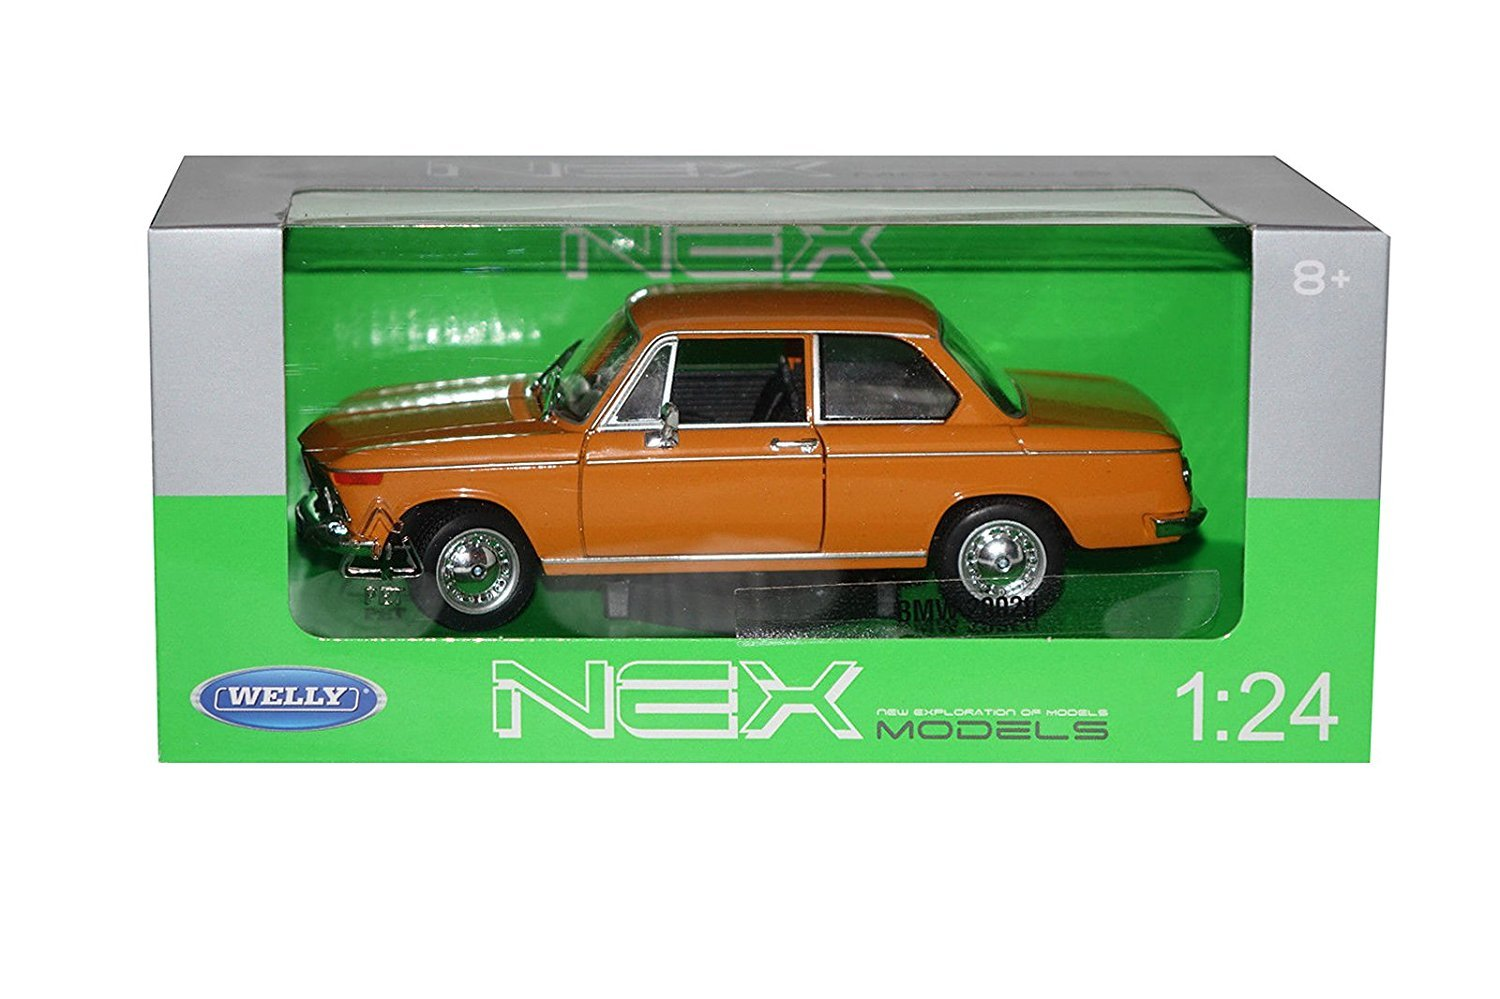 Welly 1968 BMW 2002ti 1/24 Scale Diecast Model Car Orange: Amazon.es: Juguetes y juegos